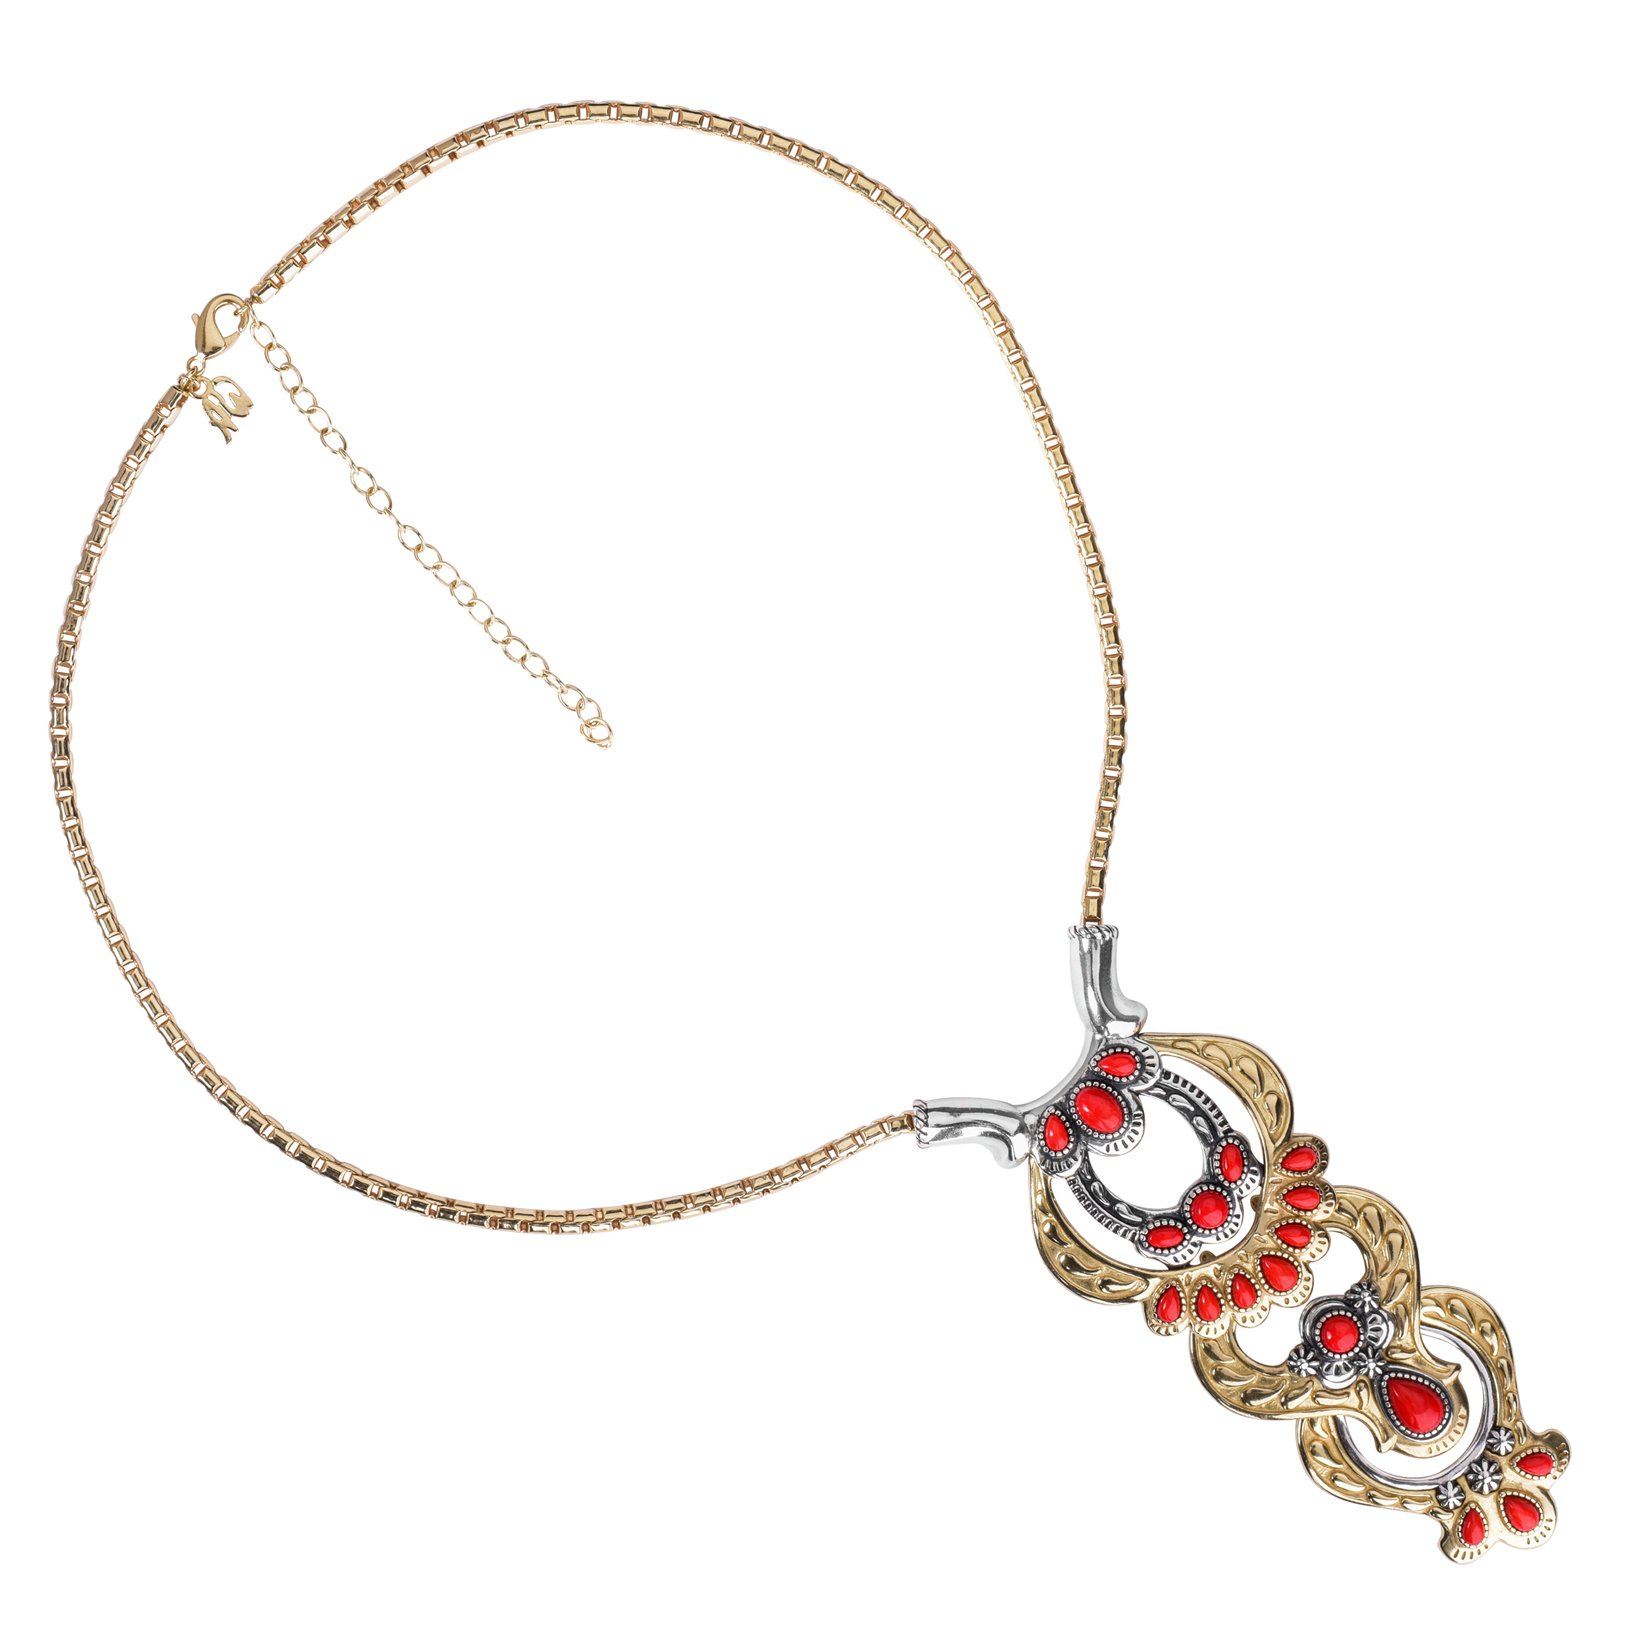 Sterling Silver, Brass and Red Coral Necklace with Removable Stations by American West (Image #5)